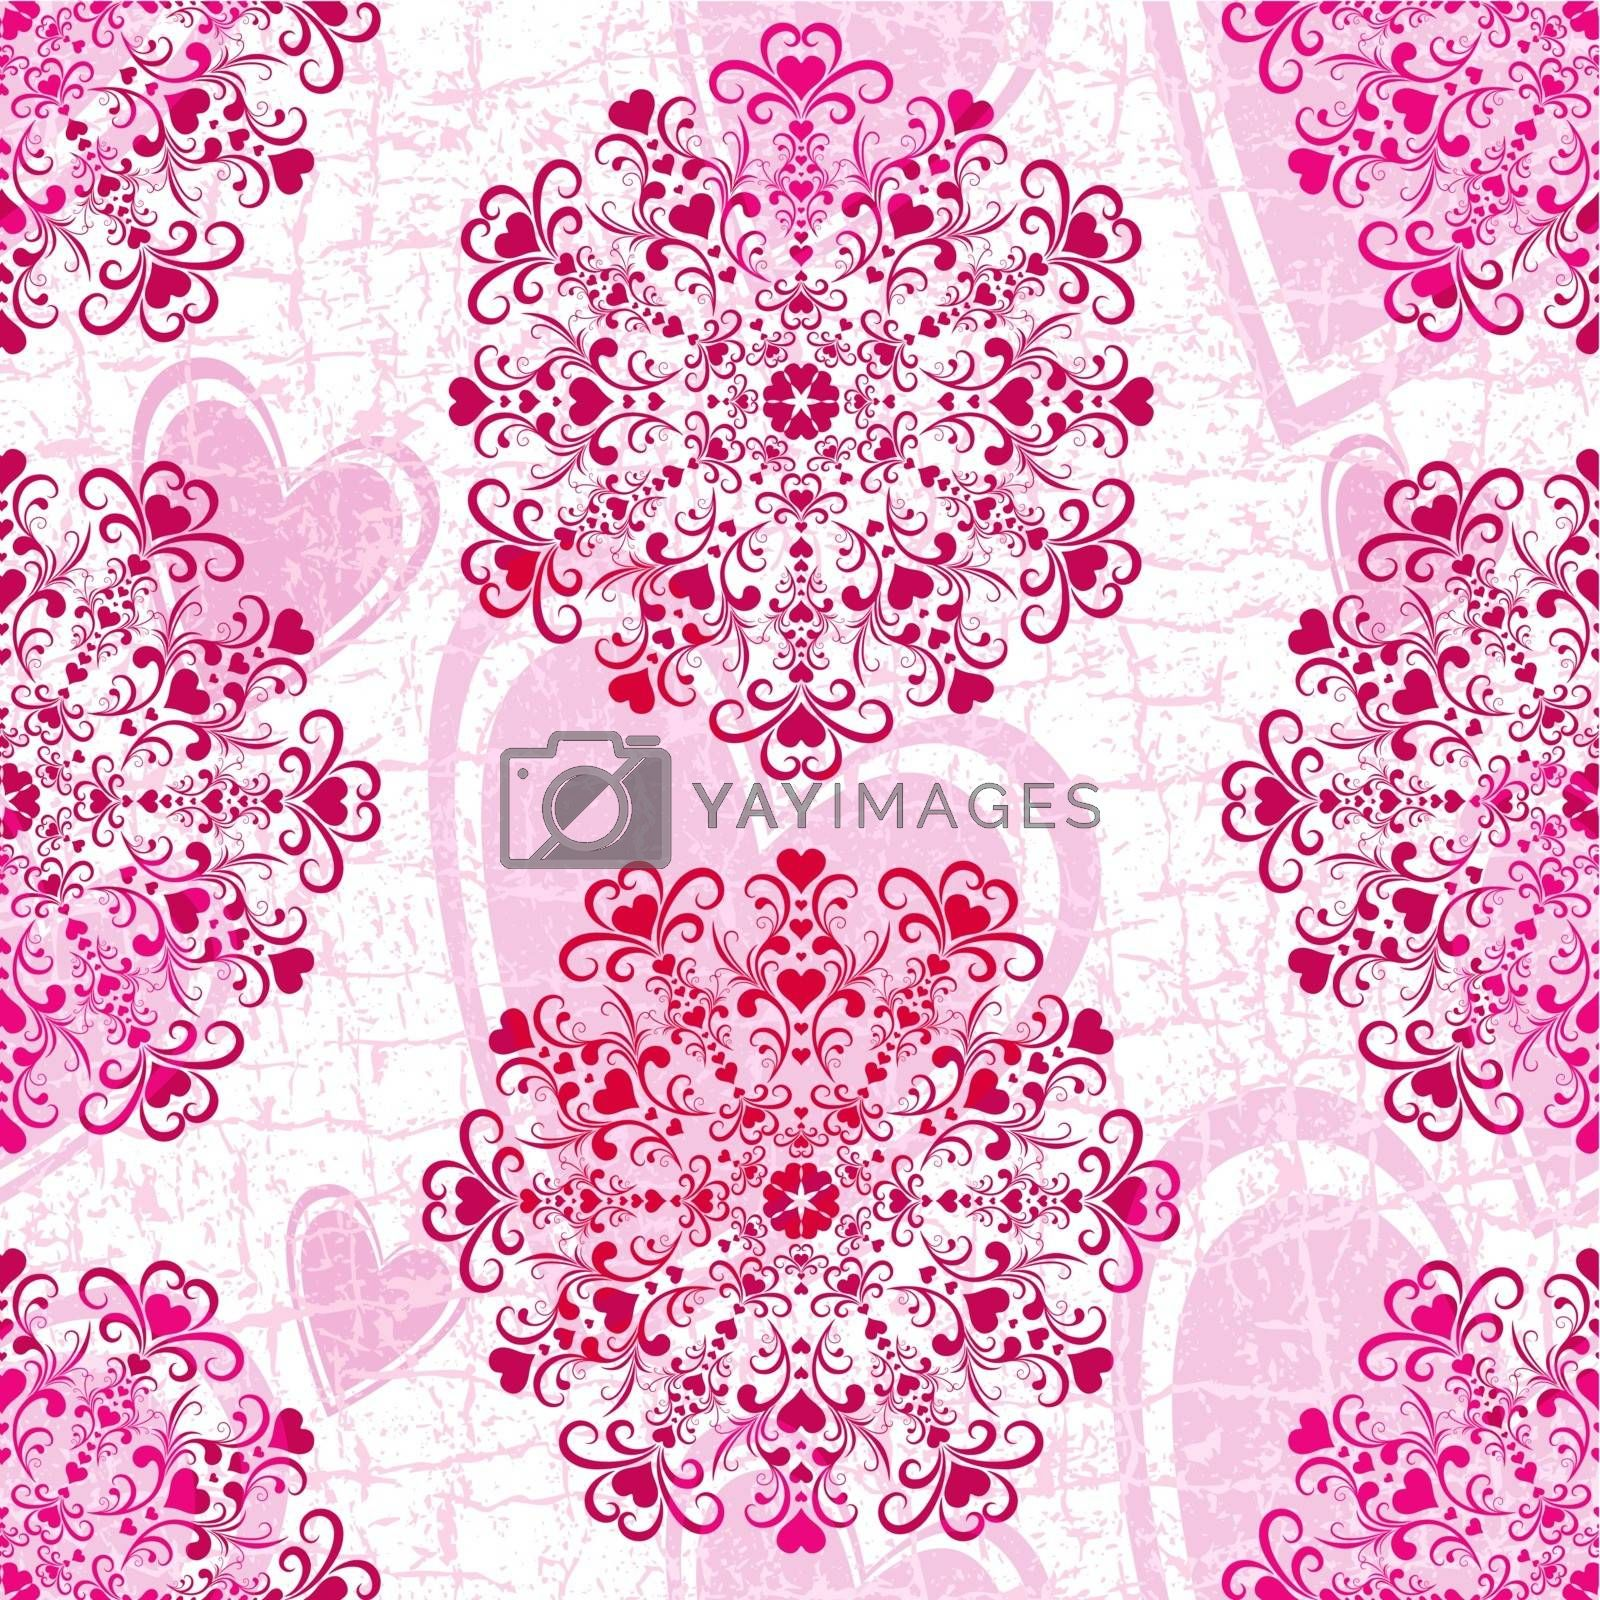 Pink seamless grunge valentine pattern with floral ornament and hearts (vector eps 10)